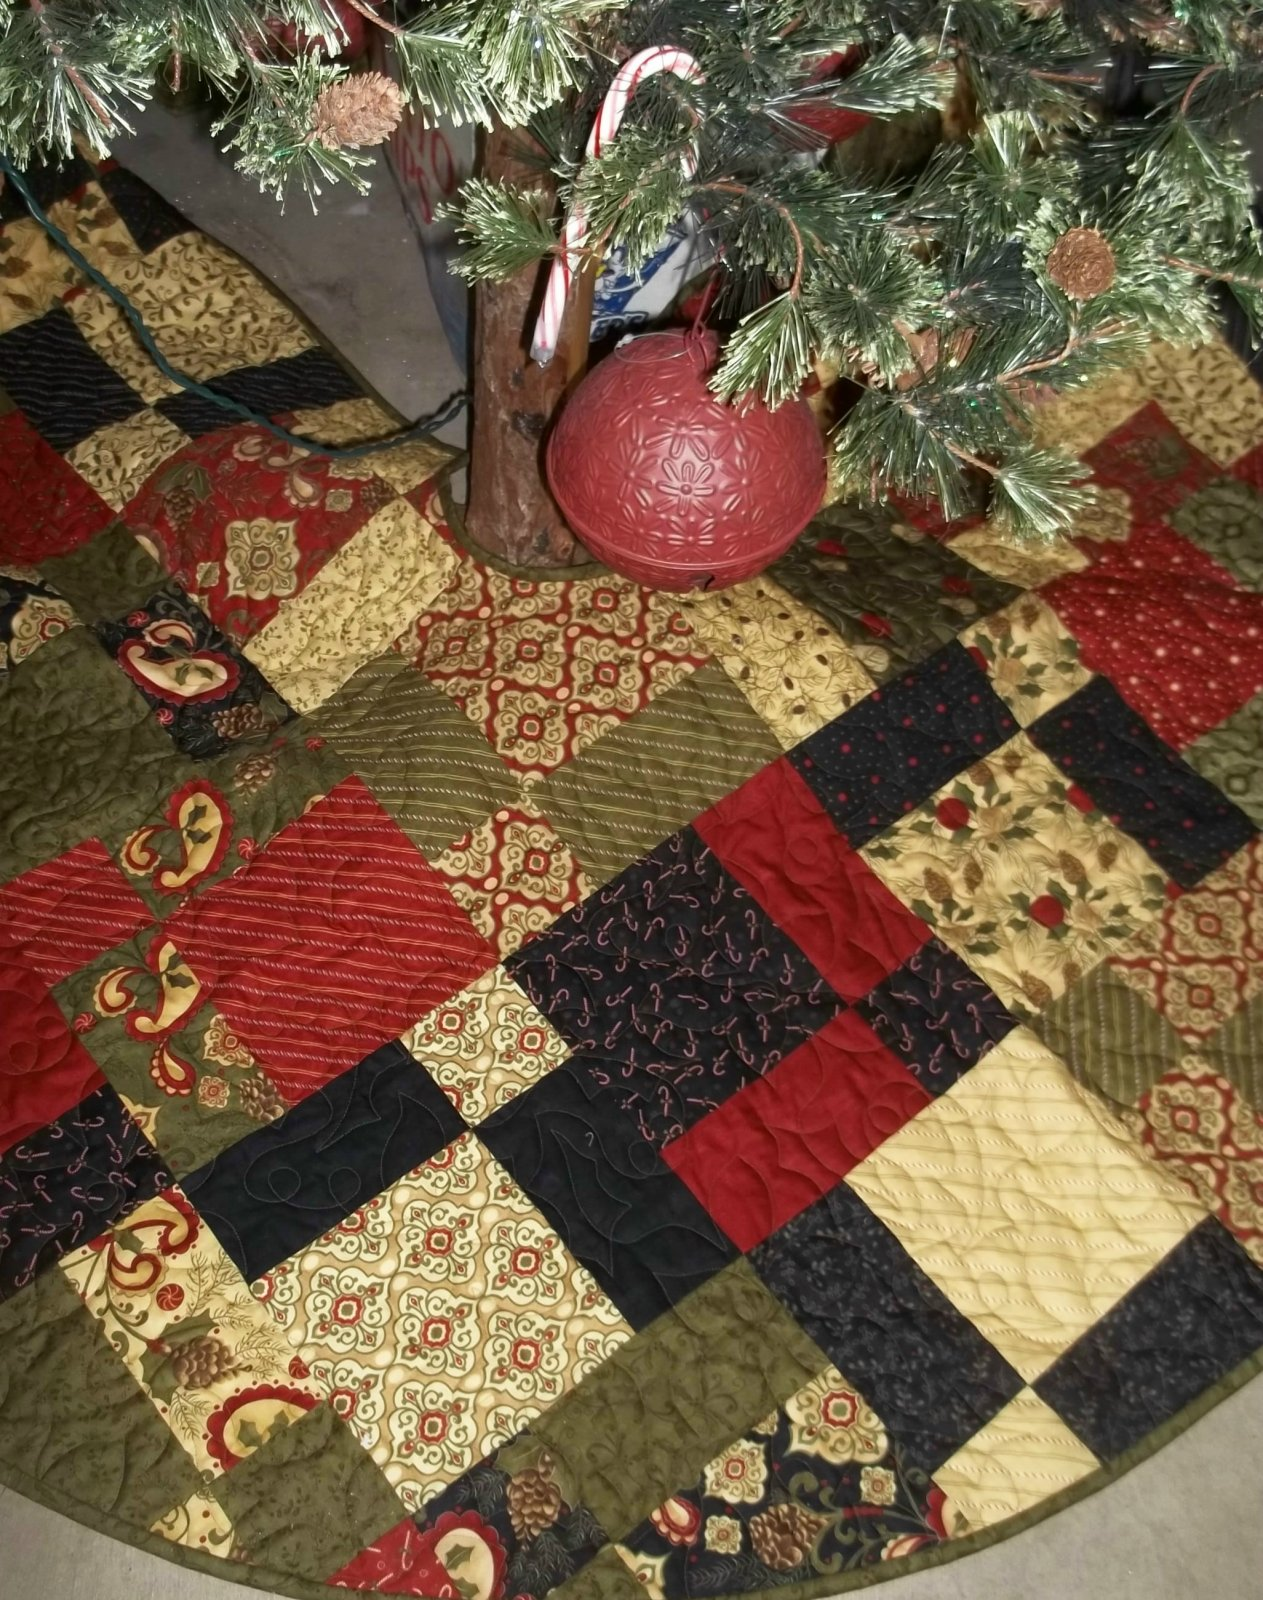 Hip Hop Christmas Tree skirt - D